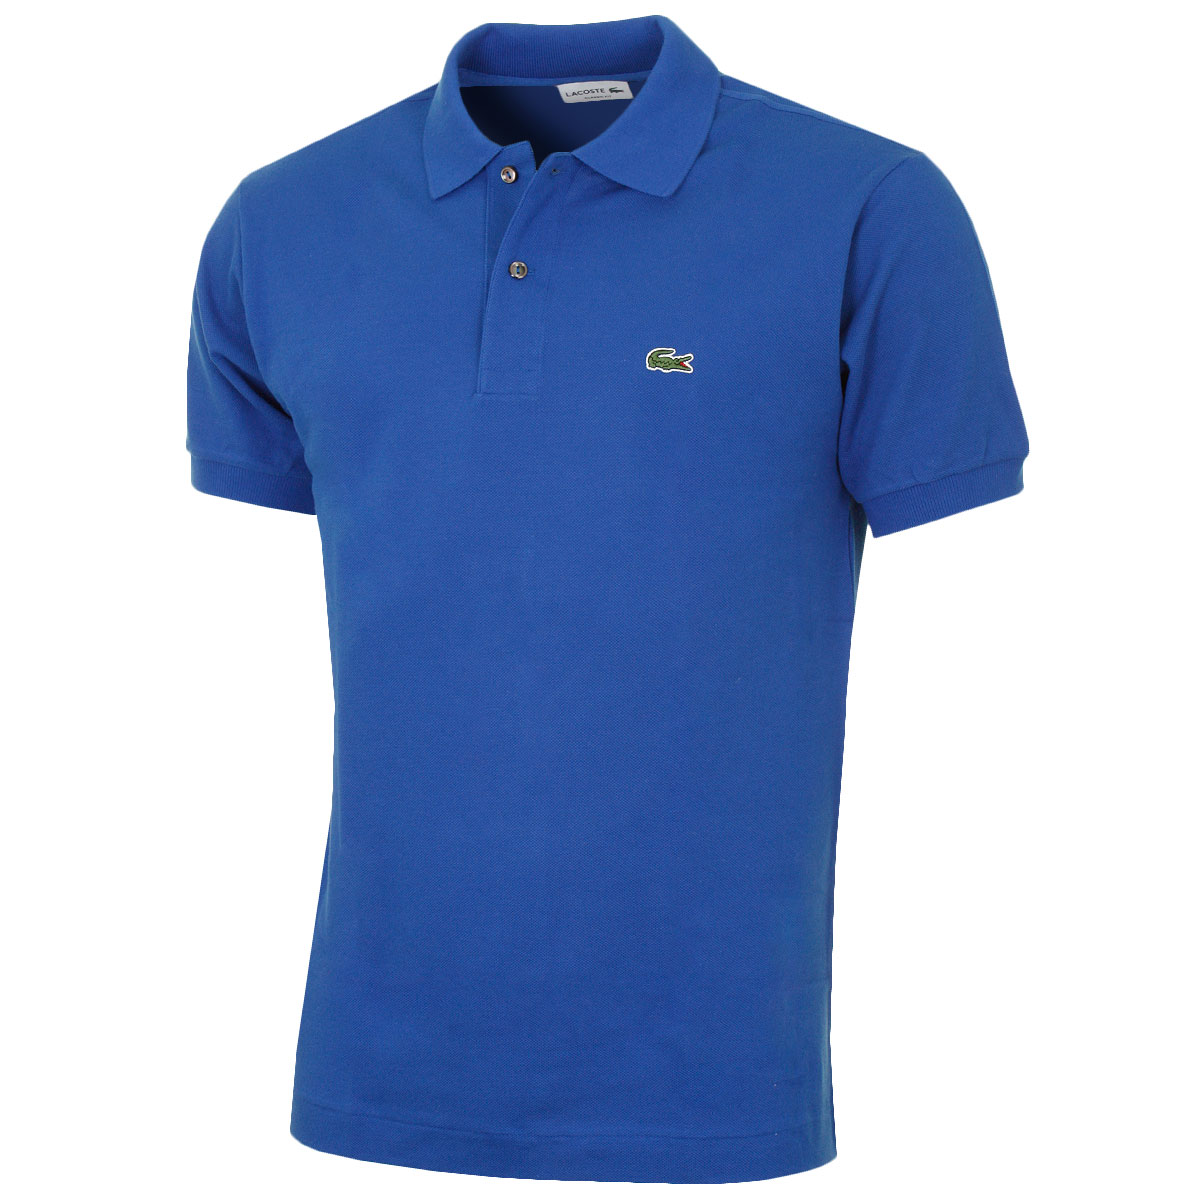 Lacoste 2016 mens classic cotton l1212 short sleeve polo shirt various colours ebay - Lacoste poloshirt weiay ...